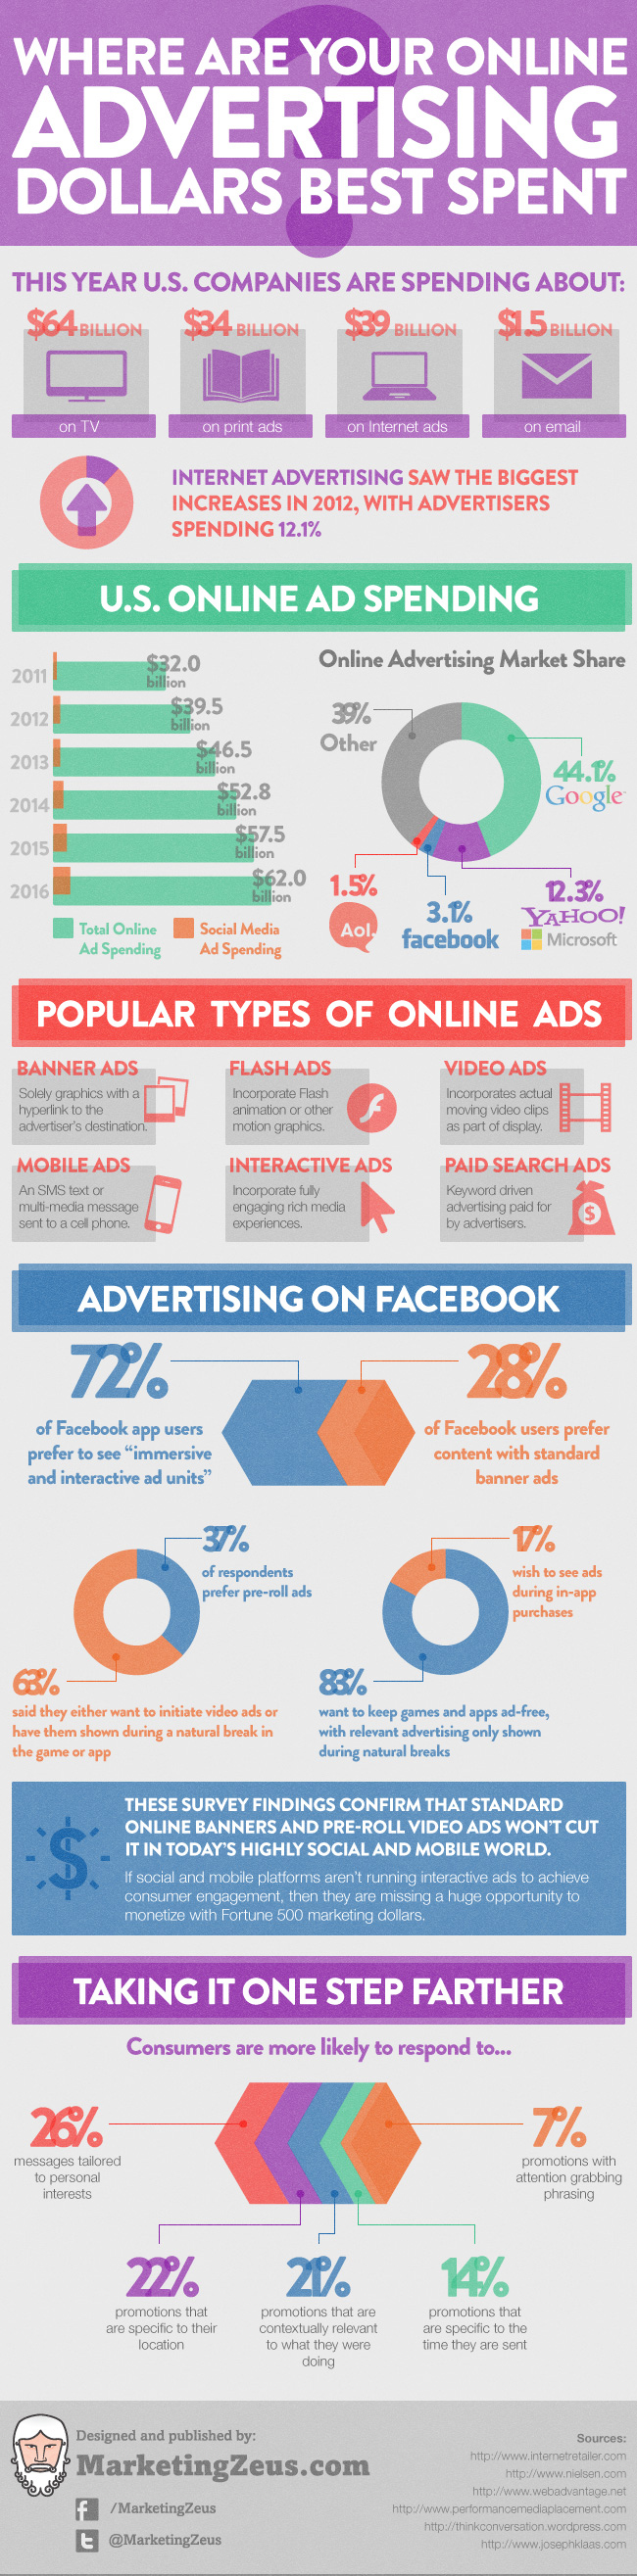 where-are-your-online-advertising-dollars-best-spent_504f7a837aa36